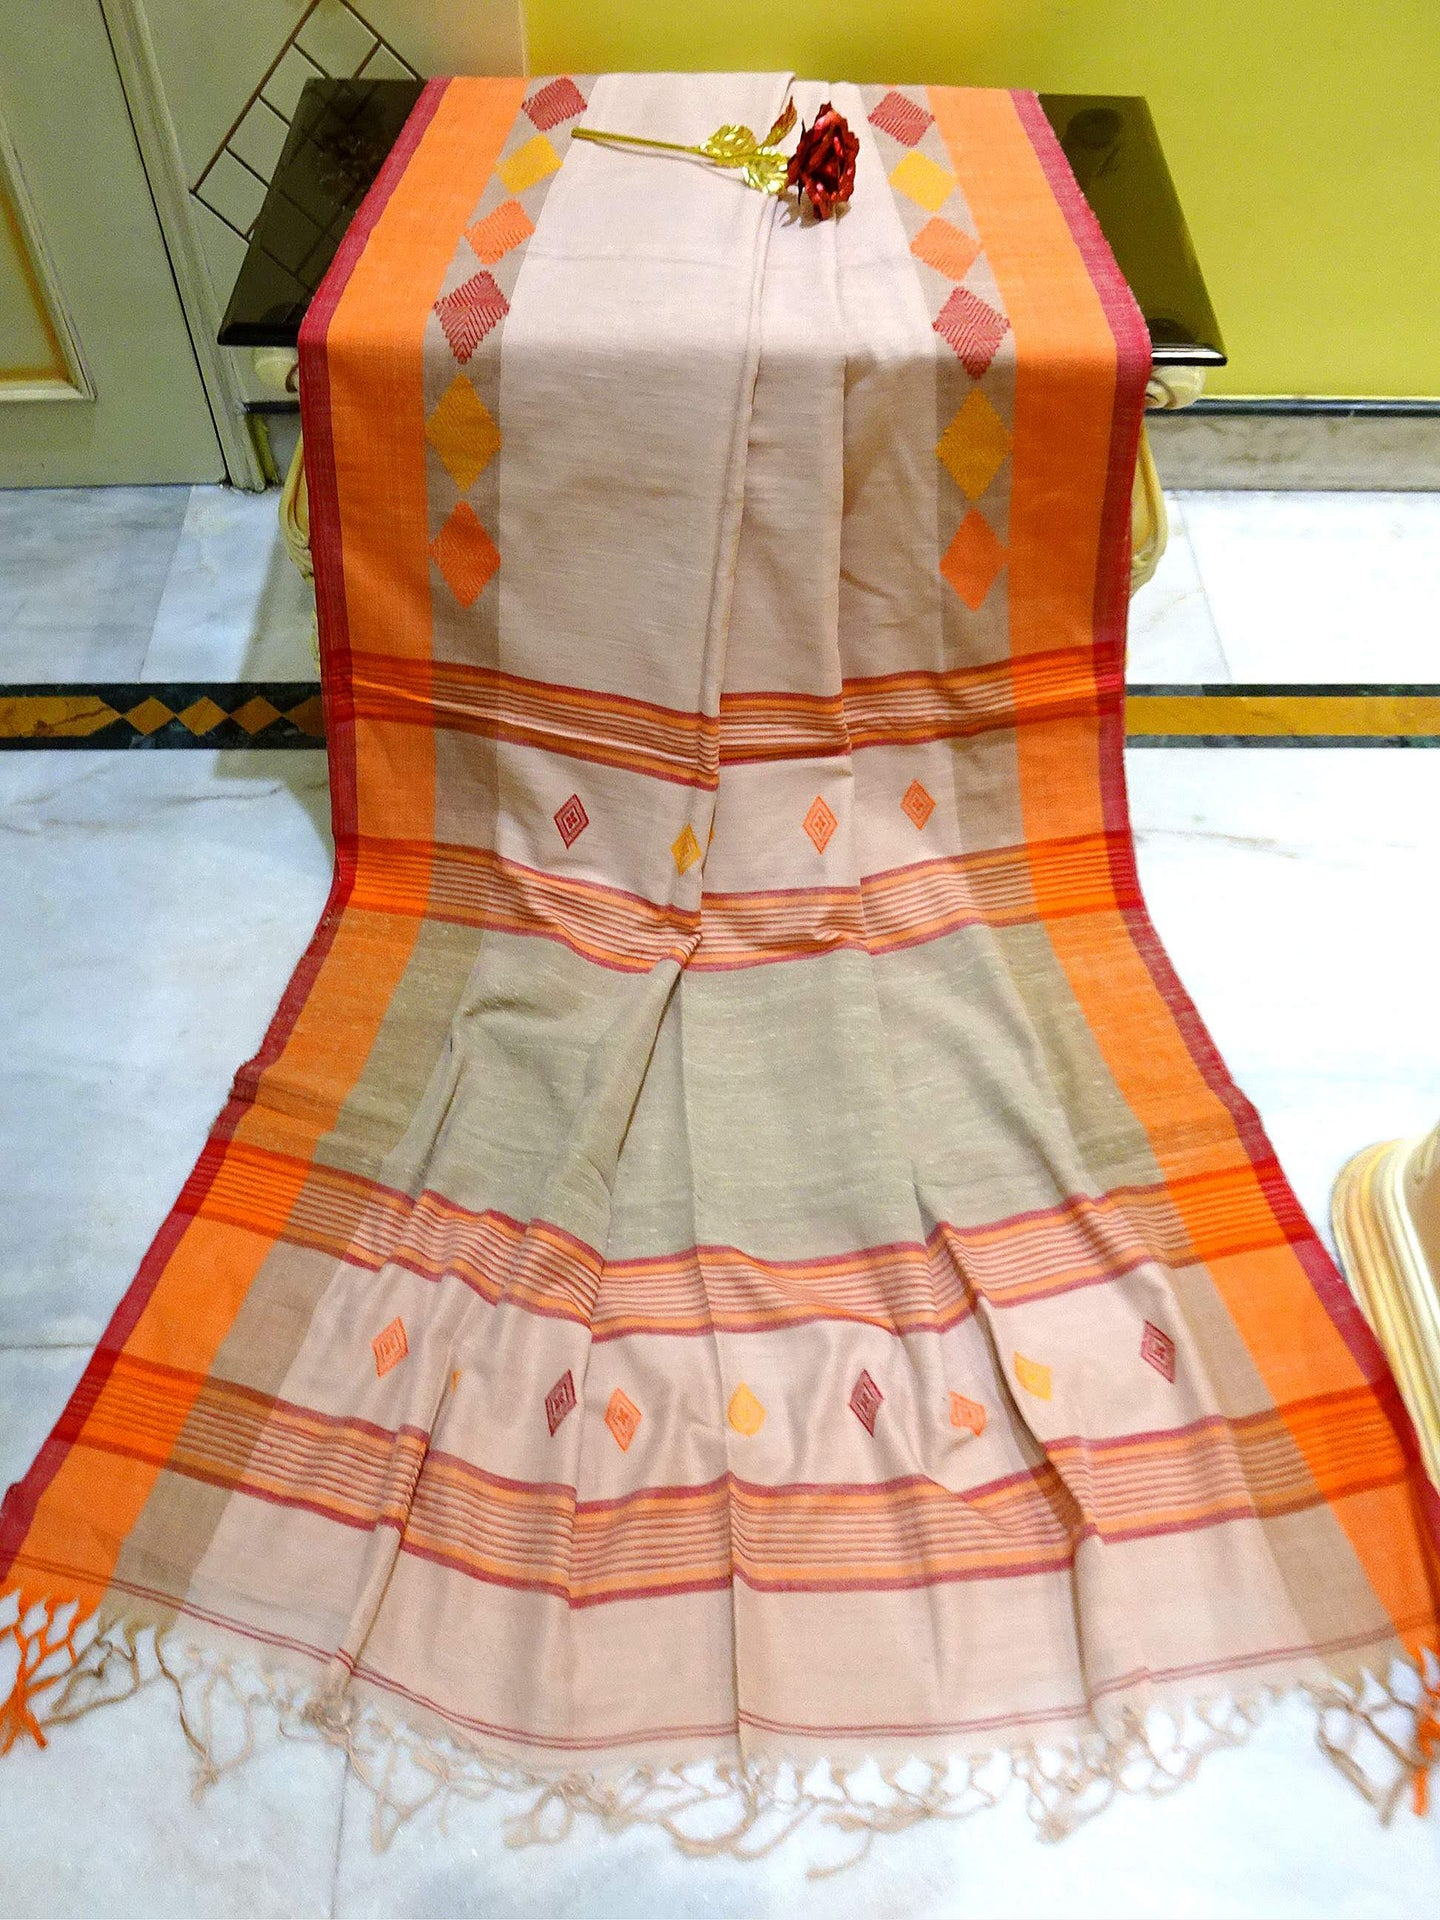 Pure Khadi Soft Cotton Saree in Cream, Orange and Red from Bengal Looms India